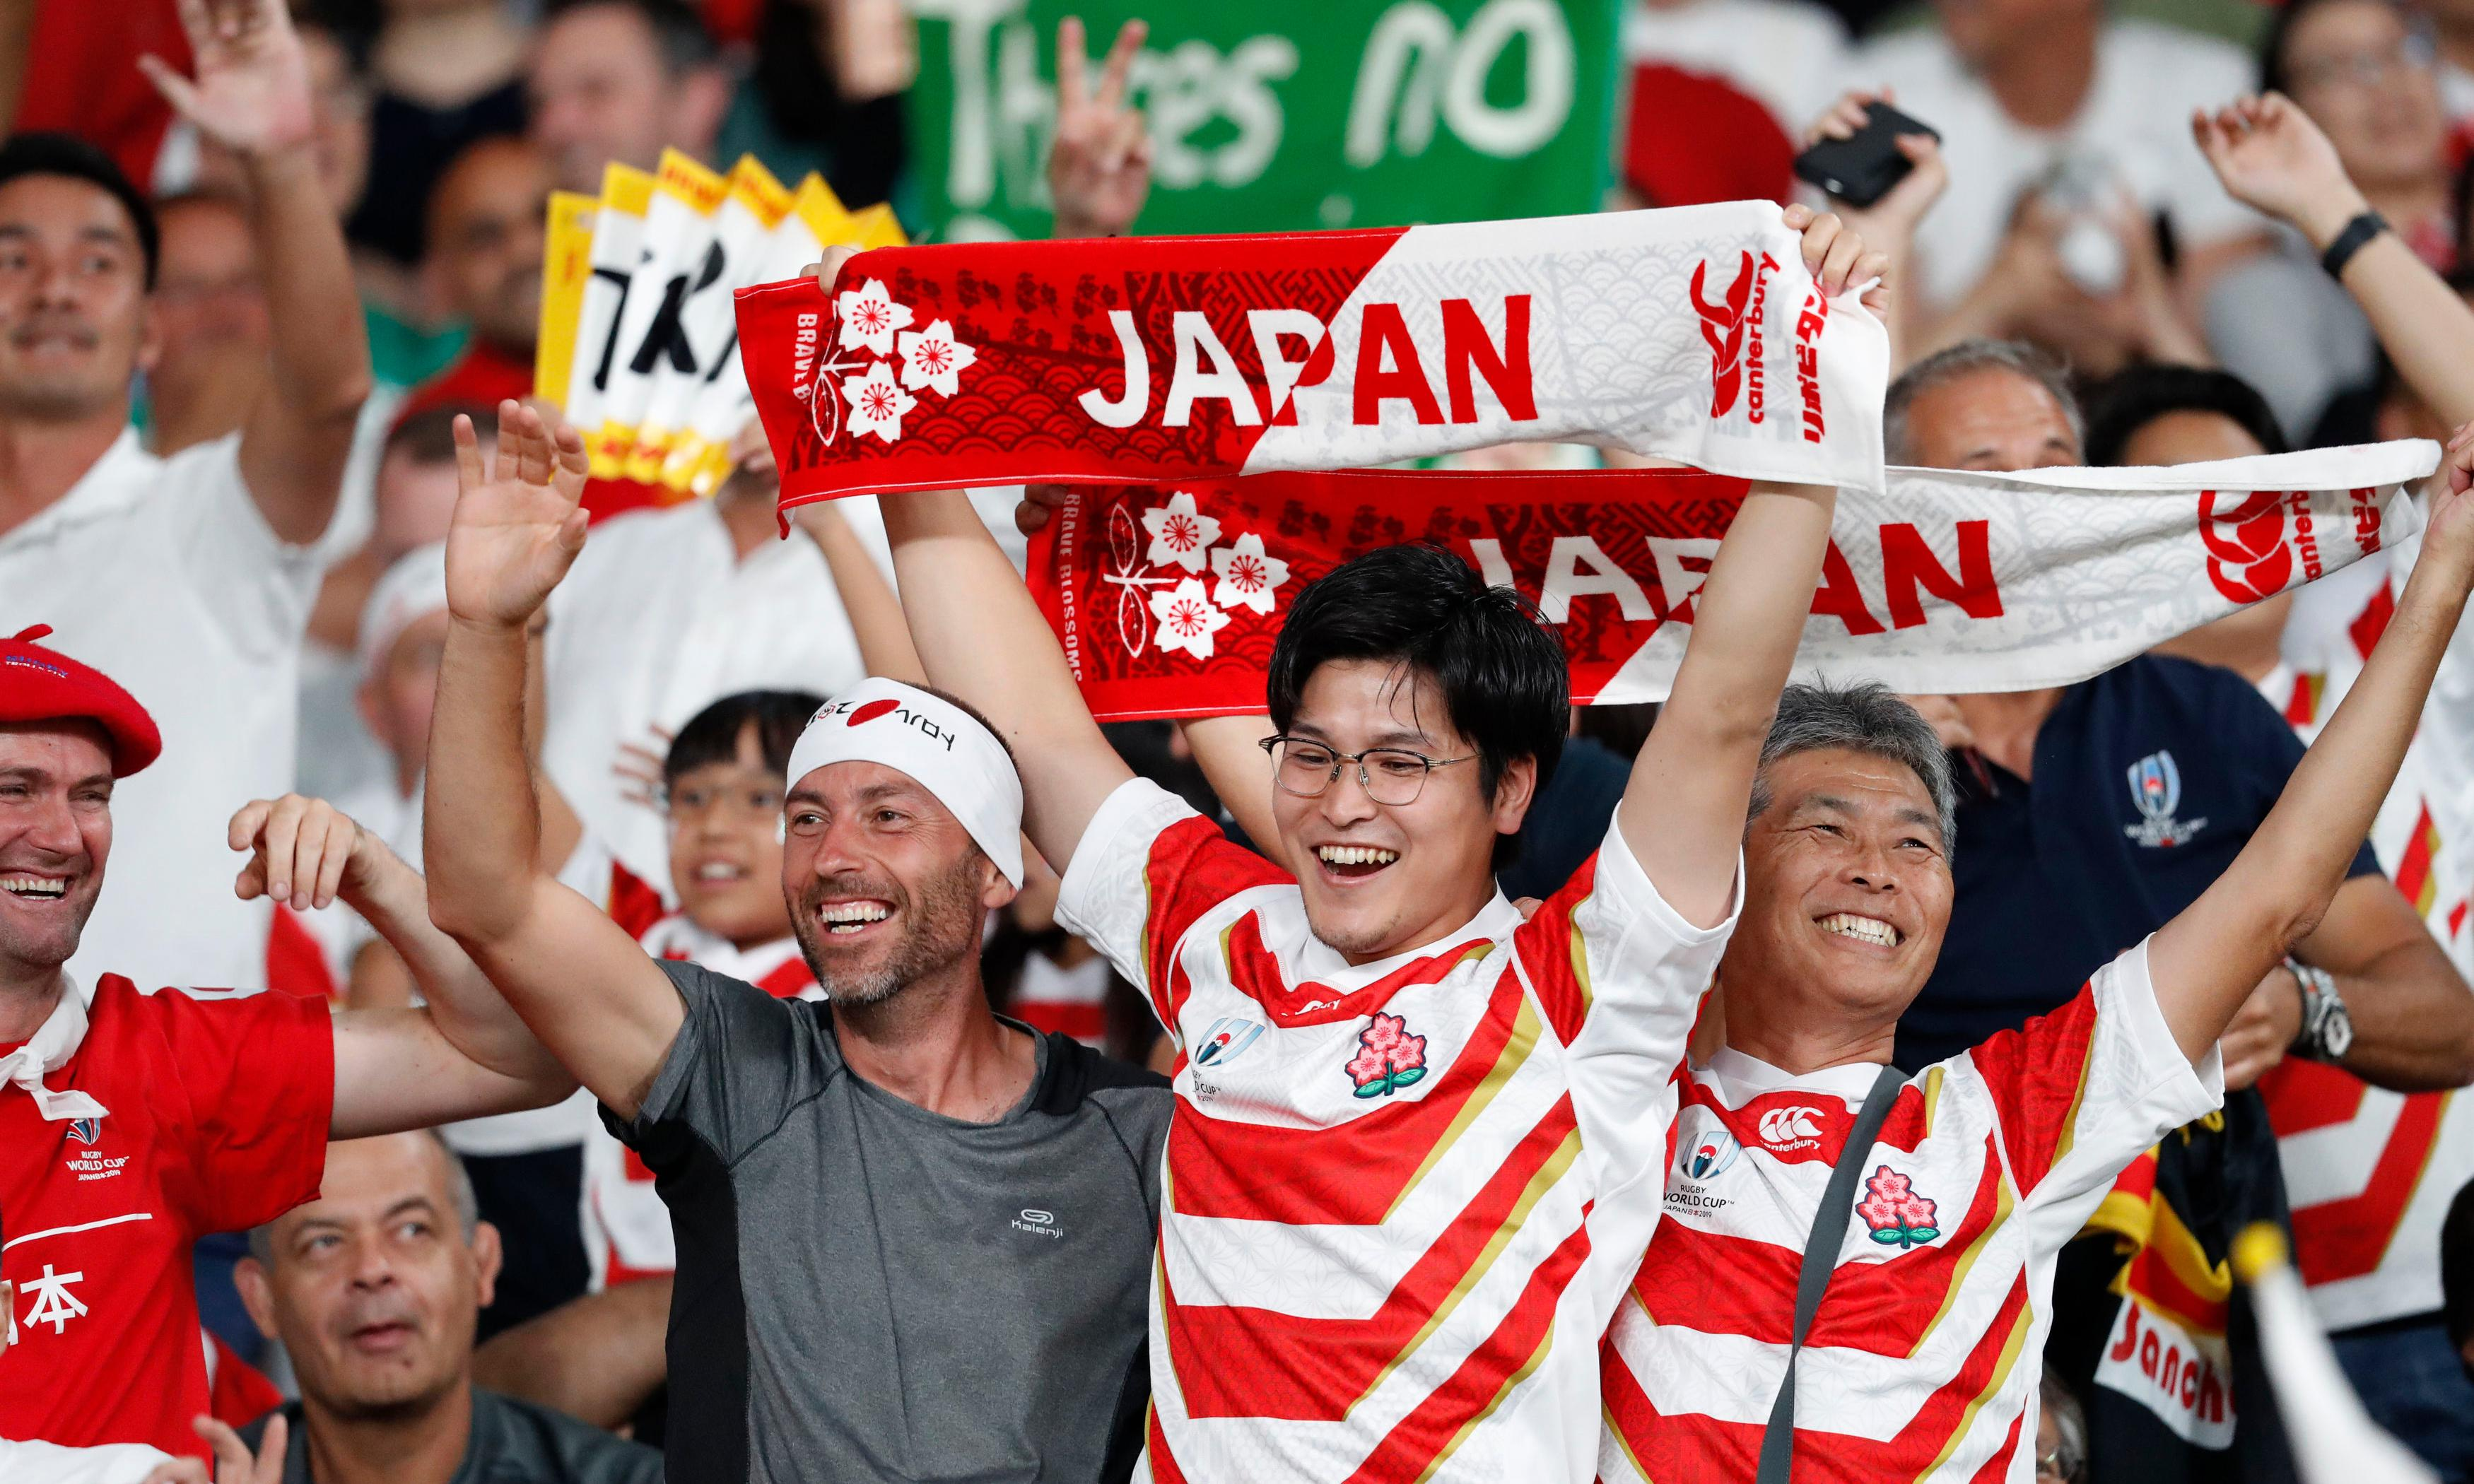 Rugby fans allowed own food in World Cup venues after shortages